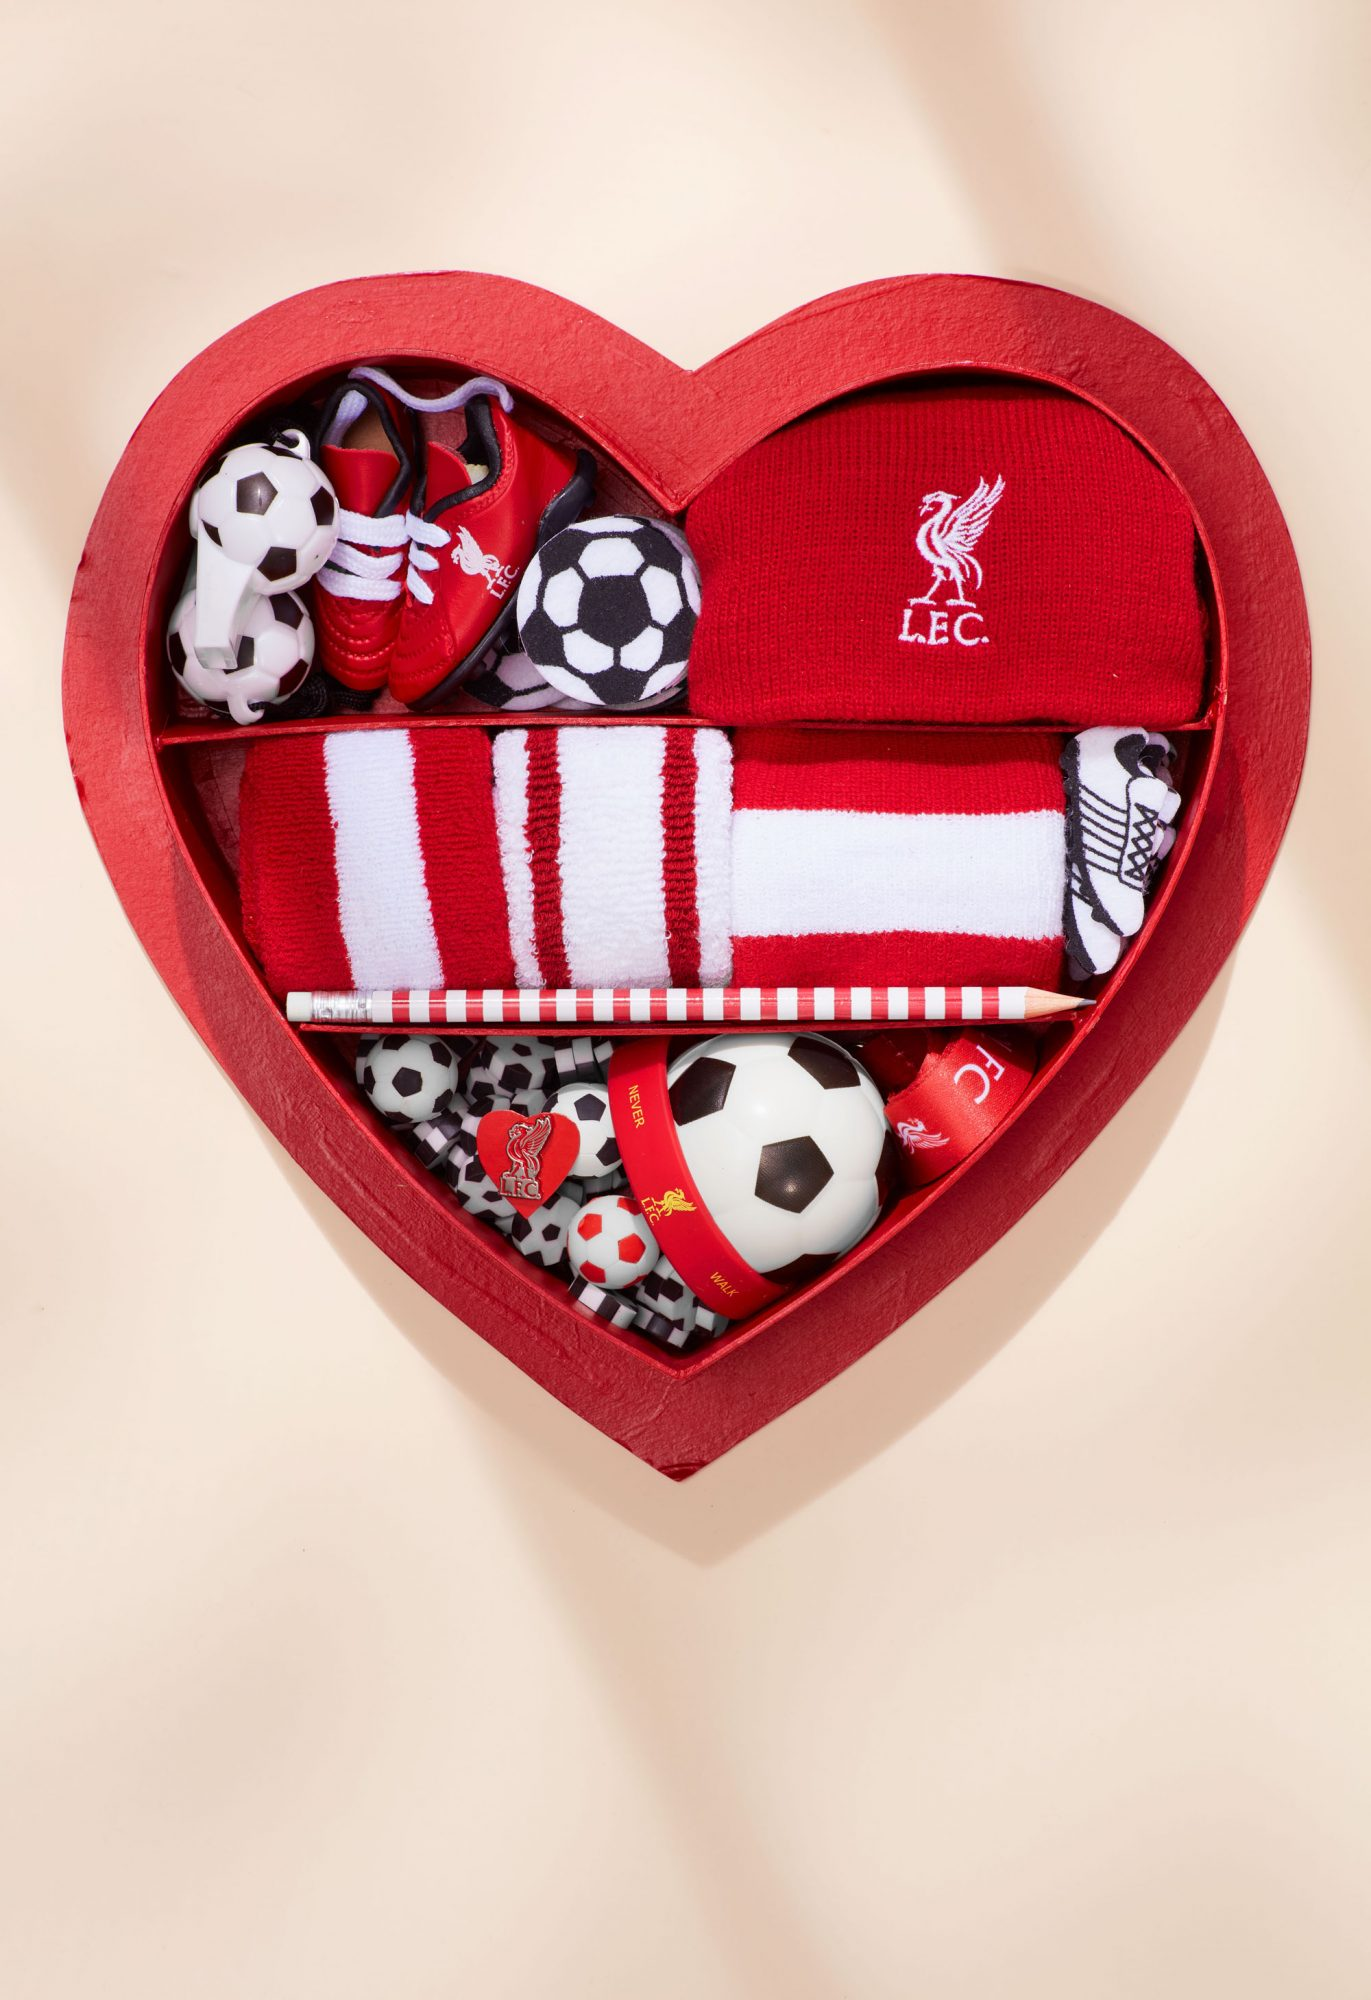 Image result for soccer heart box gift martha stewart